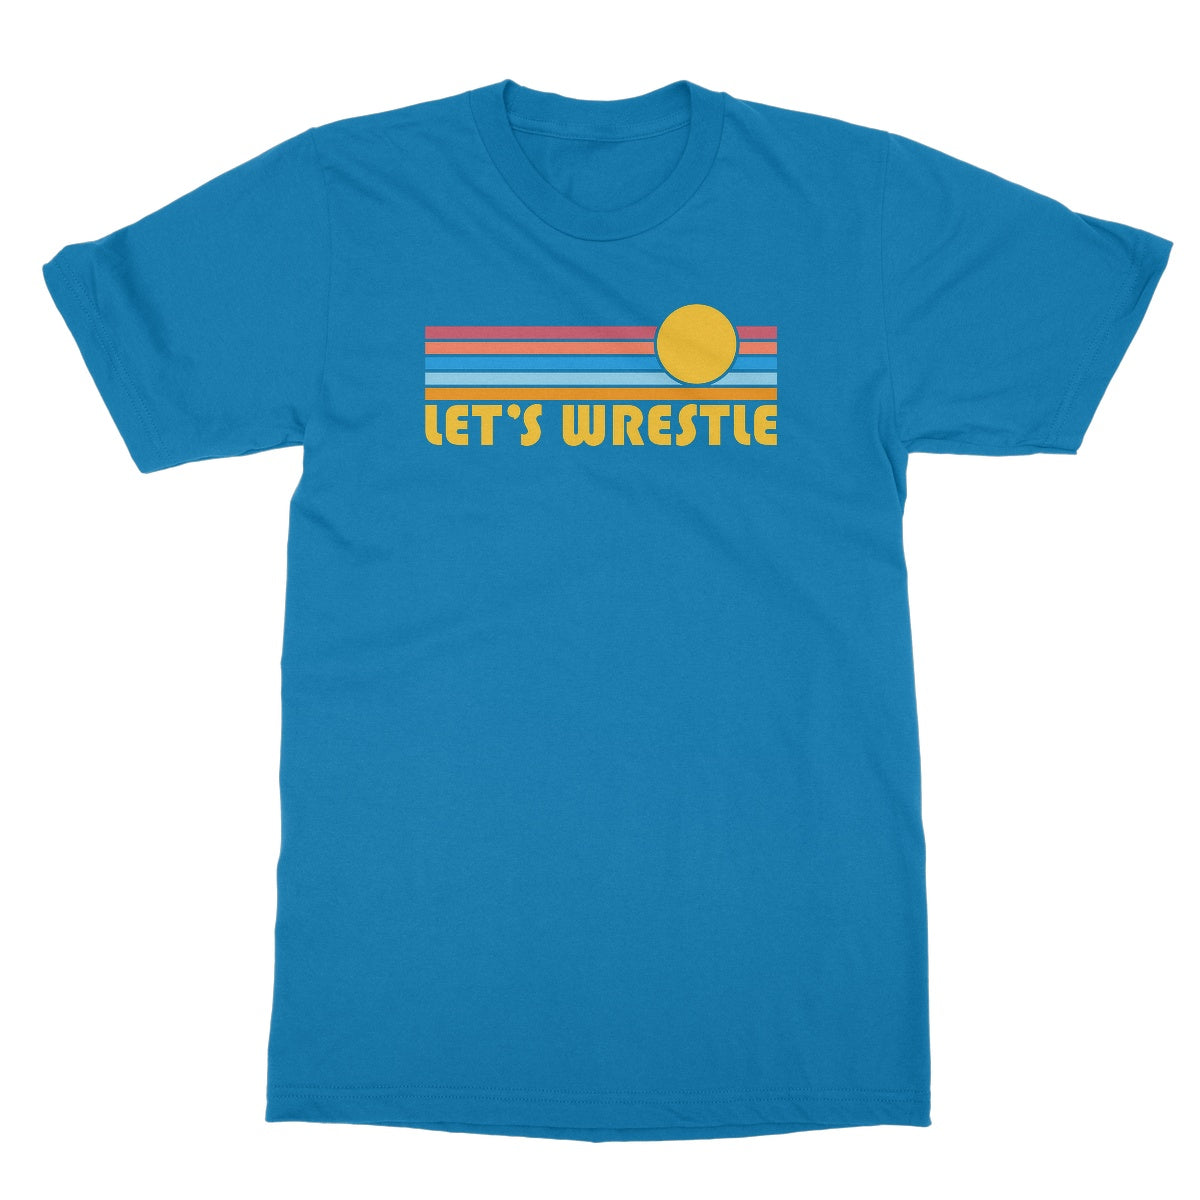 Let's Wrestle Summer Waves Softstyle T-Shirt